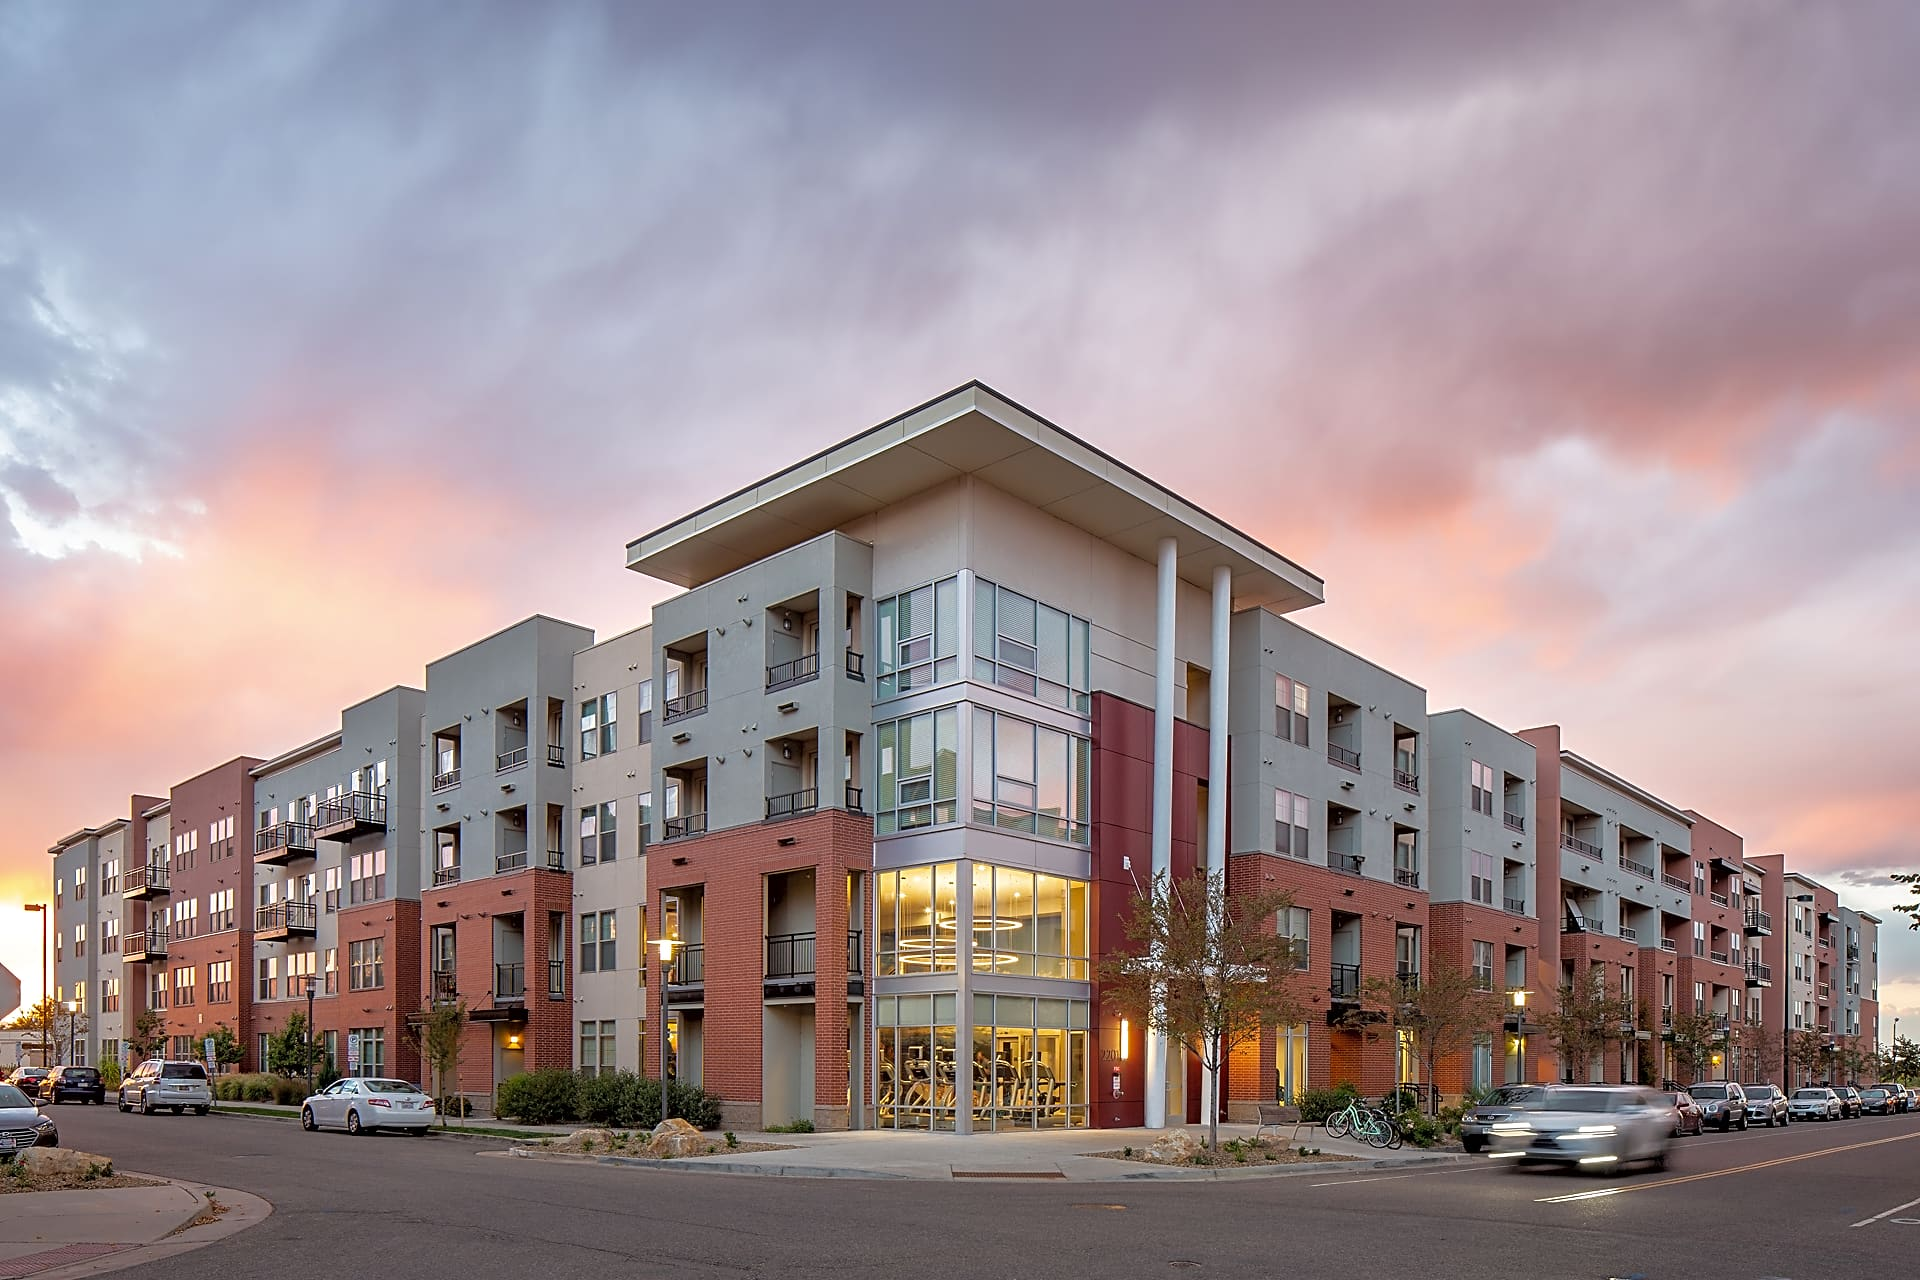 Great location on the Anschutz Medical Campus